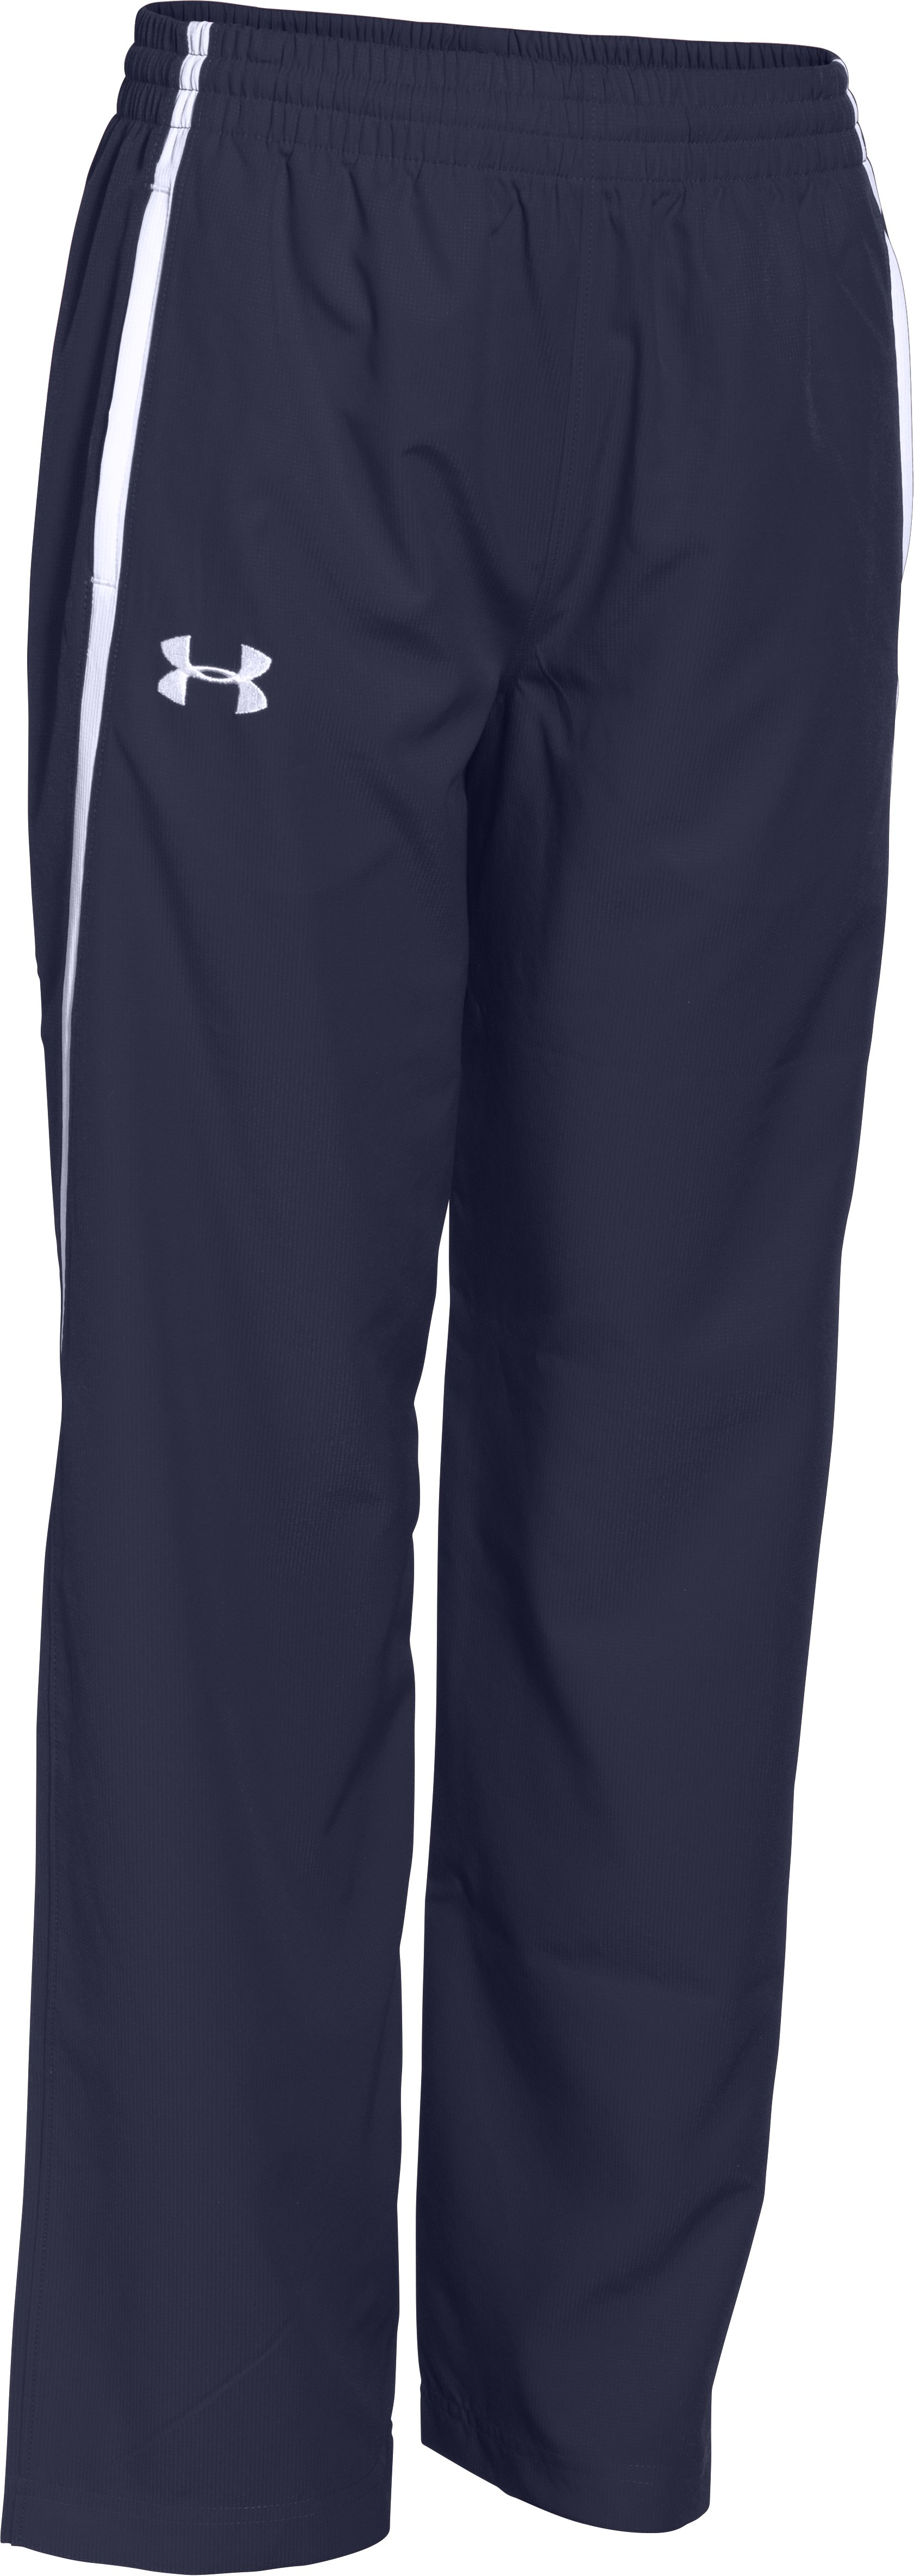 Boys' UA Essential Warm-Up Pants, Midnight Navy, undefined